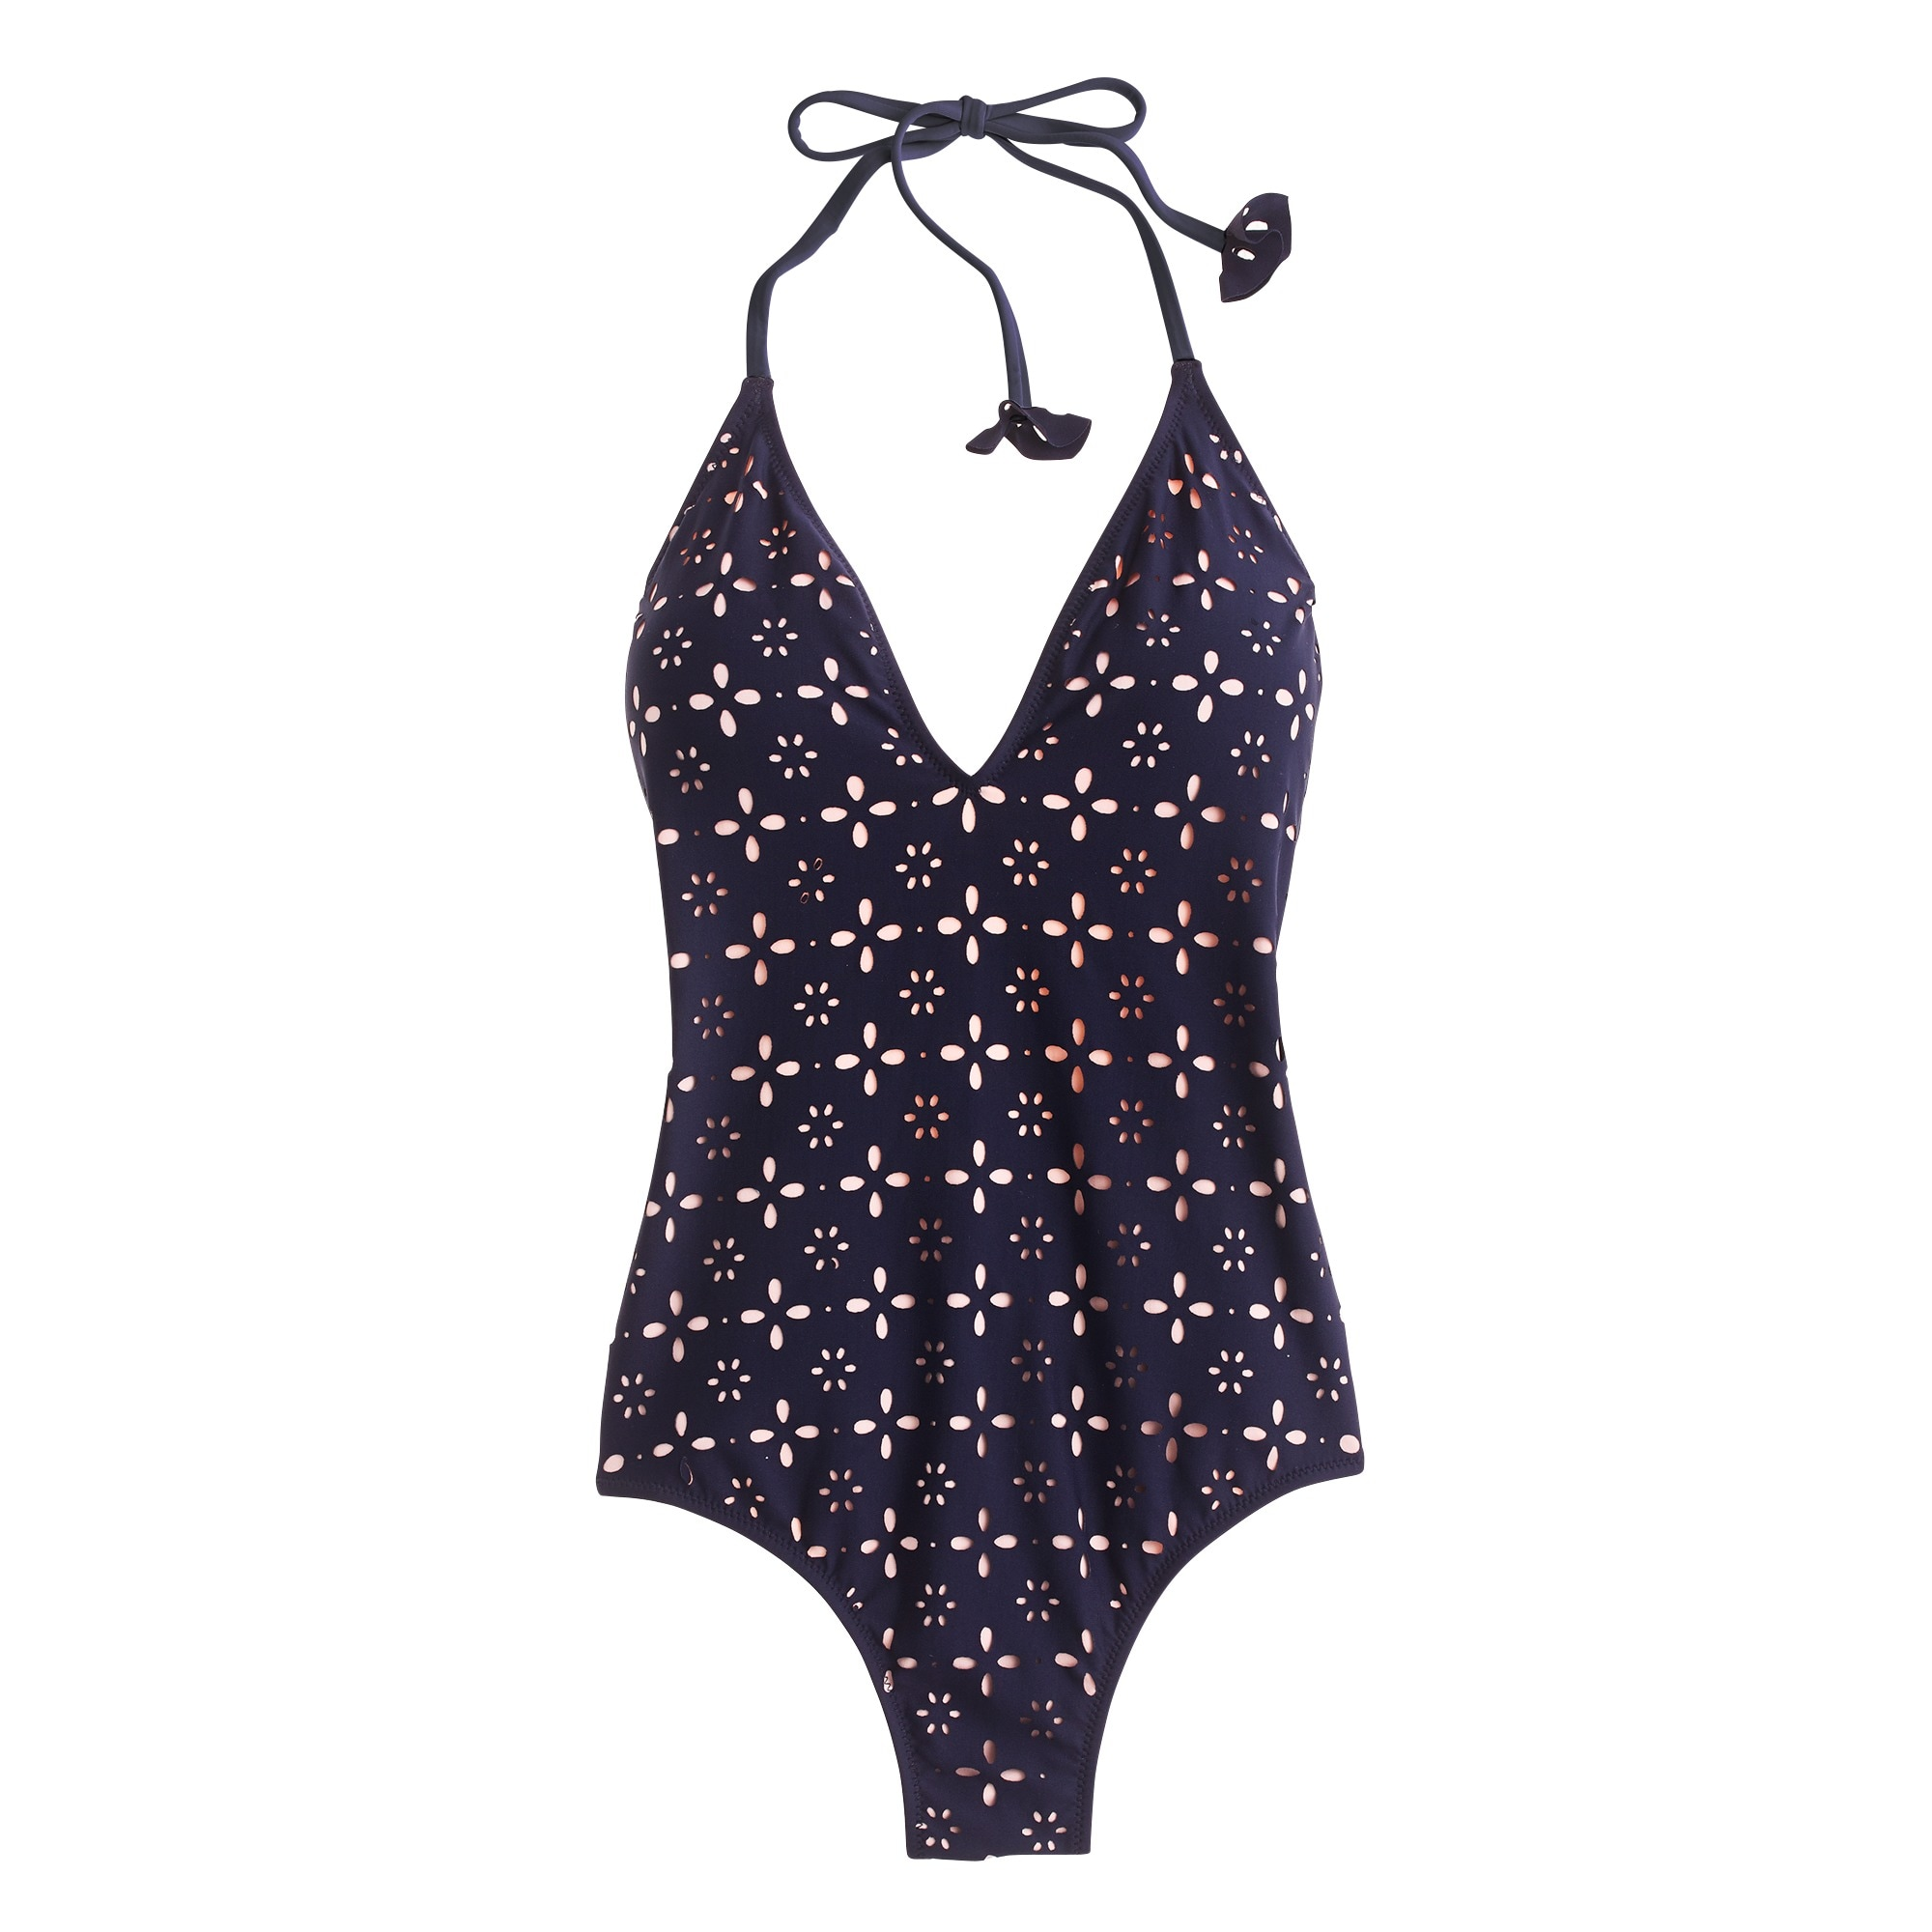 Halter one-piece swimsuit in laser-cut eyelet